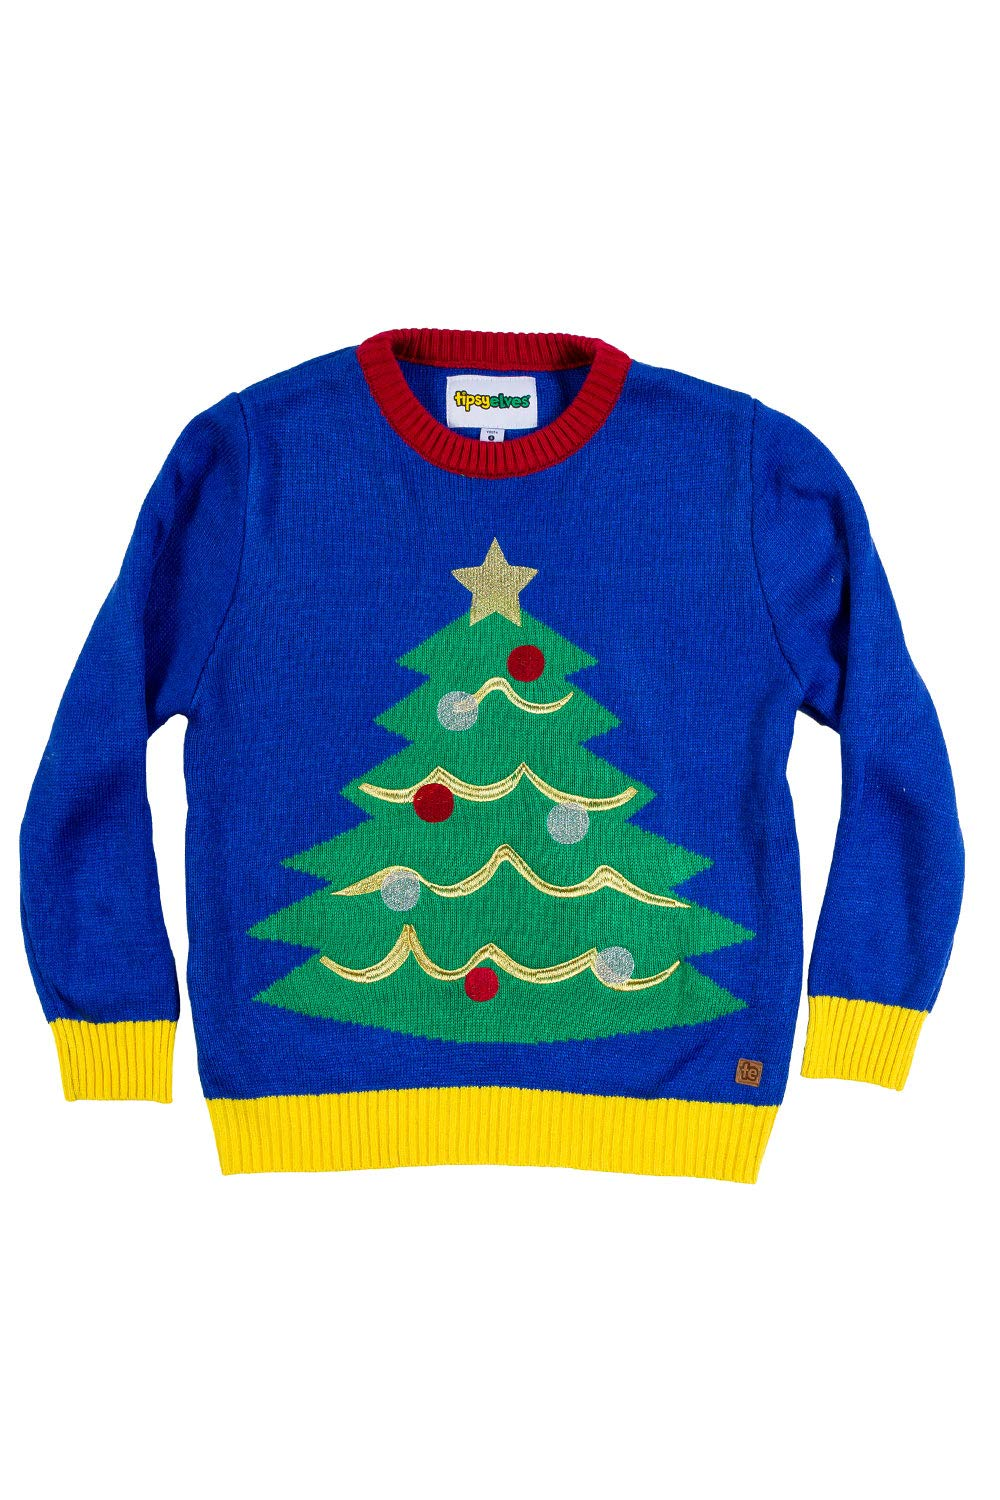 Tipsy Elves Children's Christmas Tree Ugly Christmas Sweater - Youth Ugly Sweater: Medium Blue